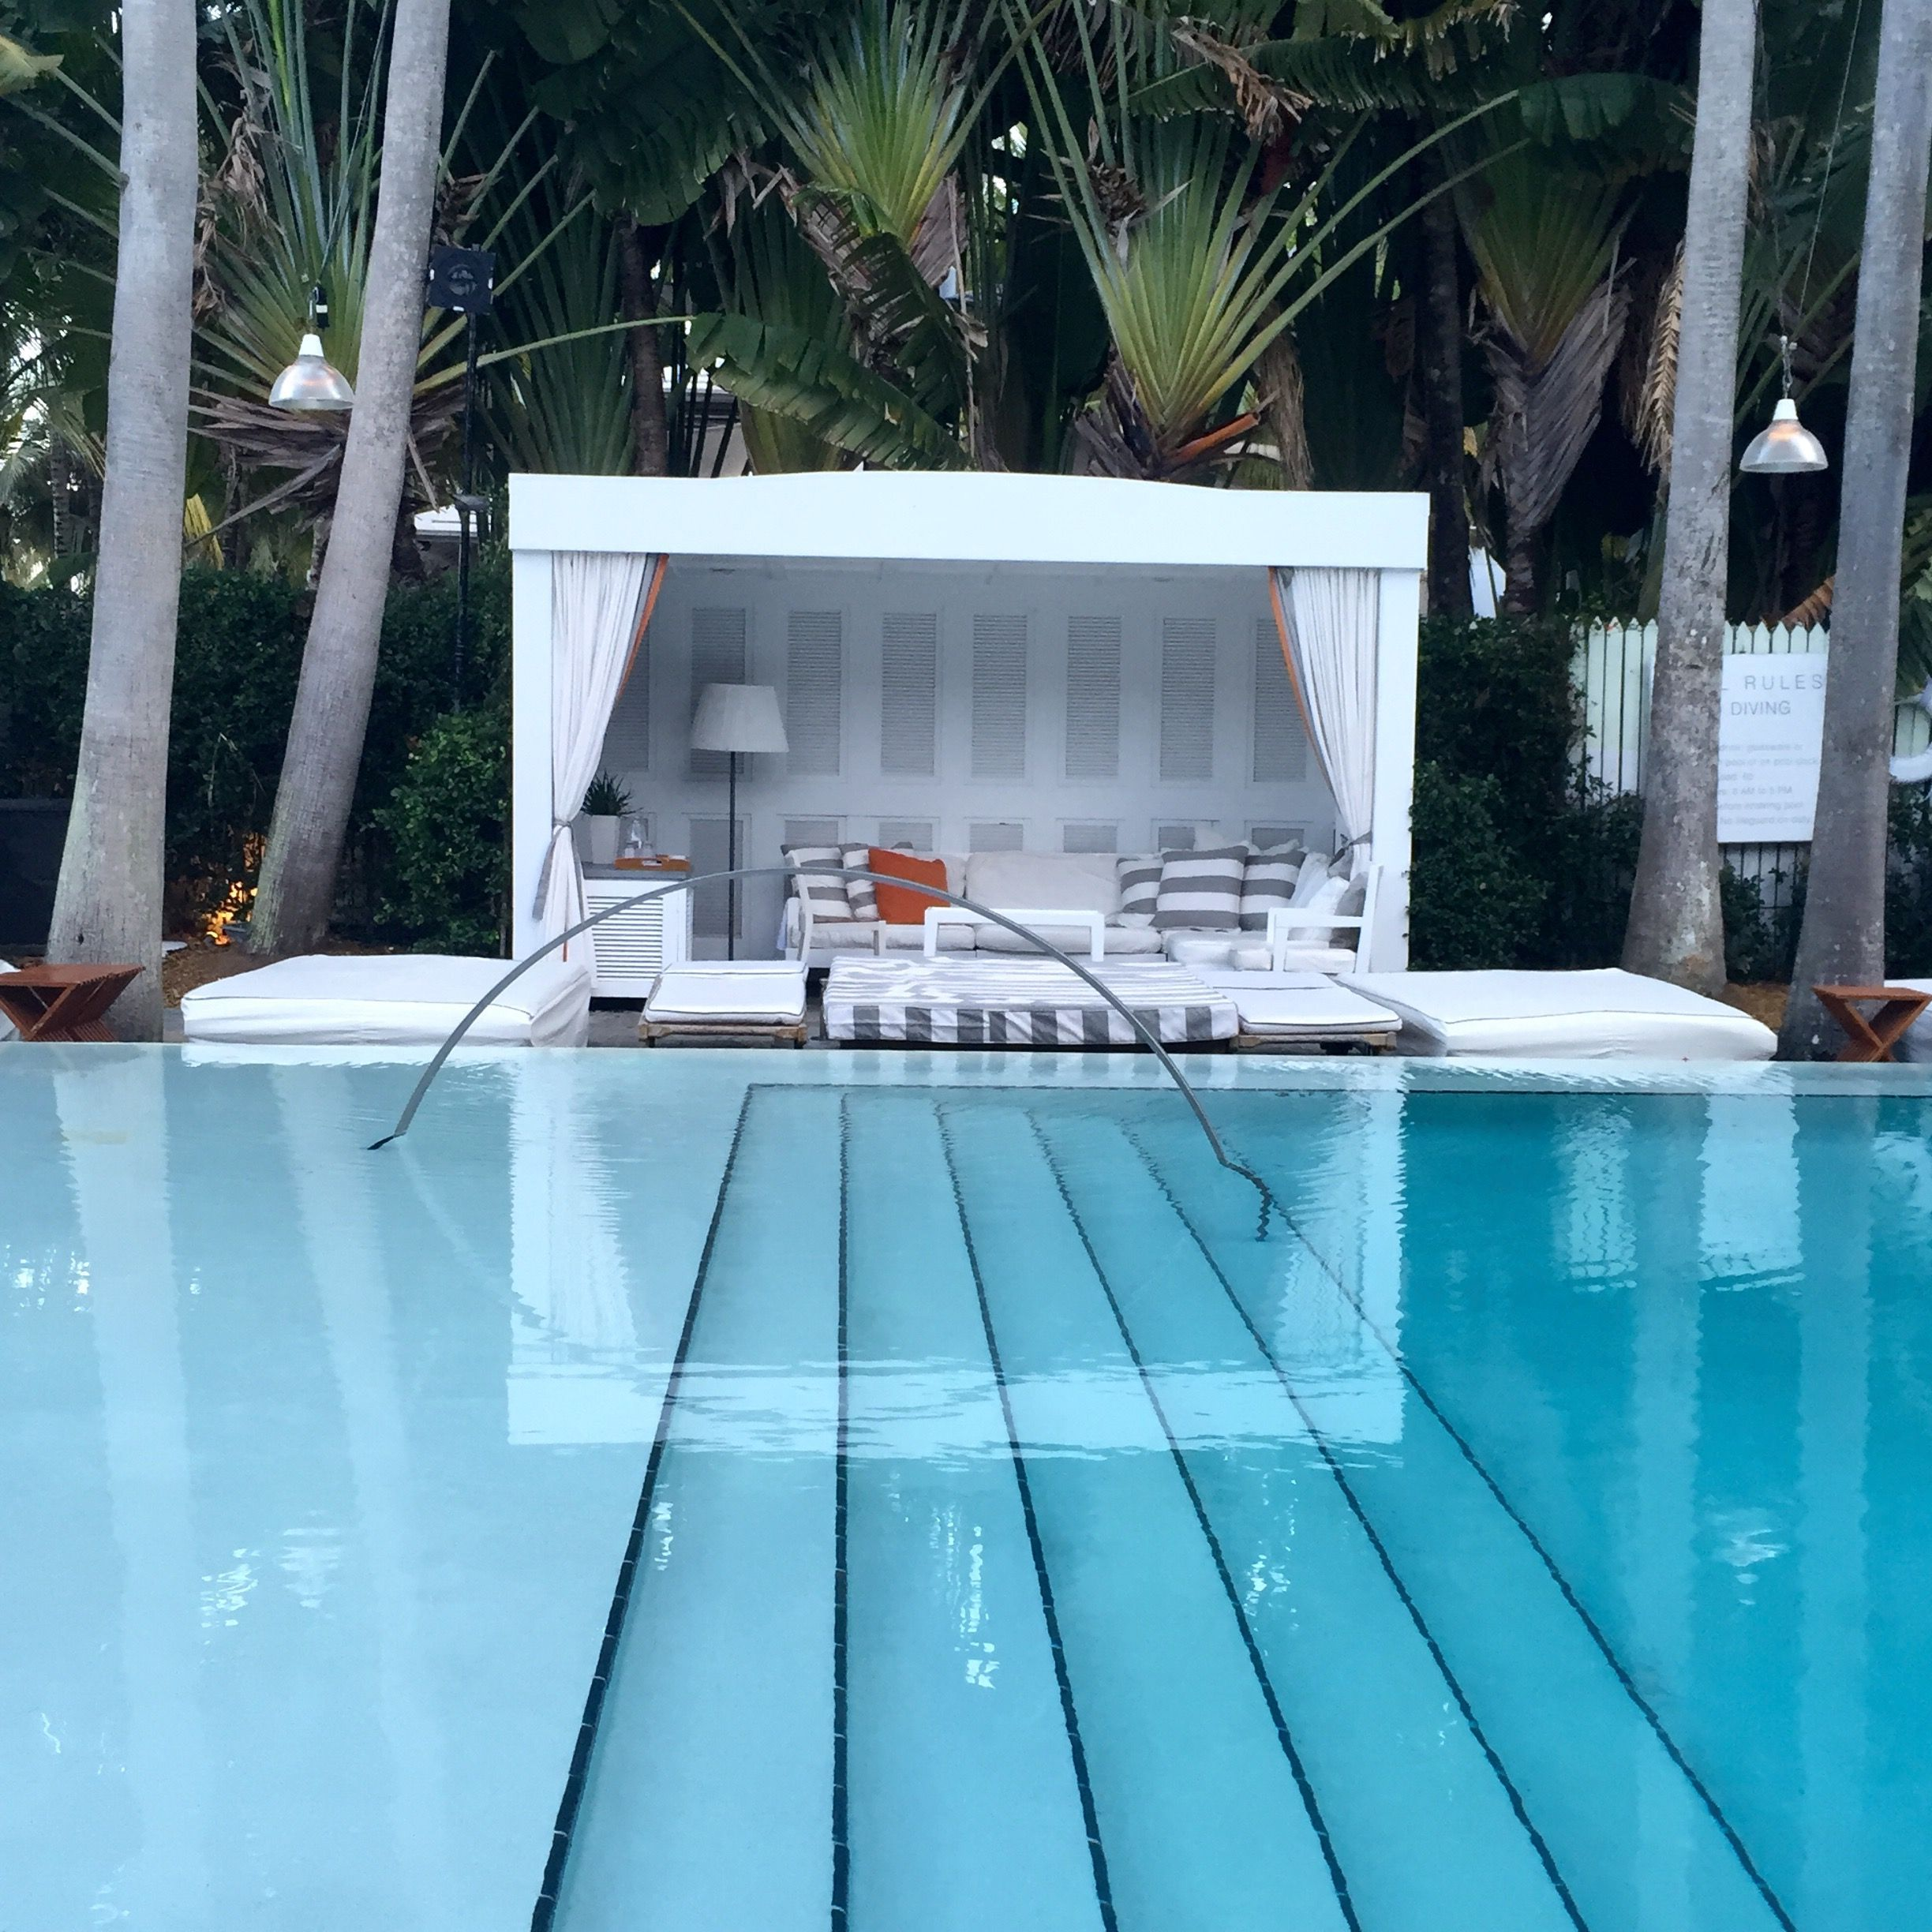 Cabana by the pool at the Delano in Miami | Pool houses ... on Small Pool Cabana Ideas id=64120